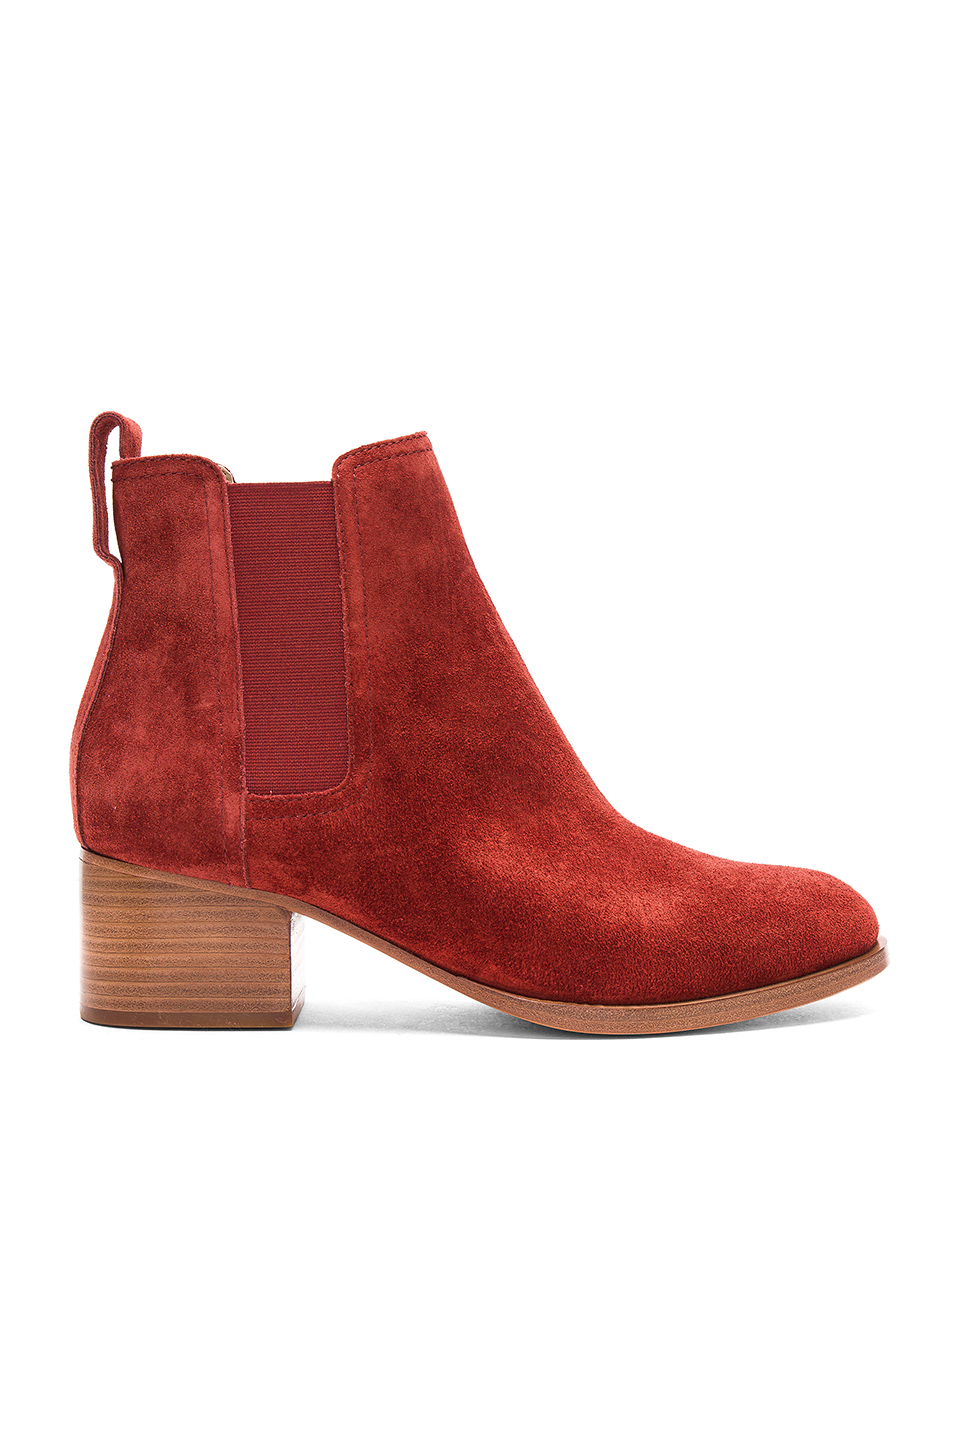 Rag & Bone WALKER BOOT. Revolve. $475.